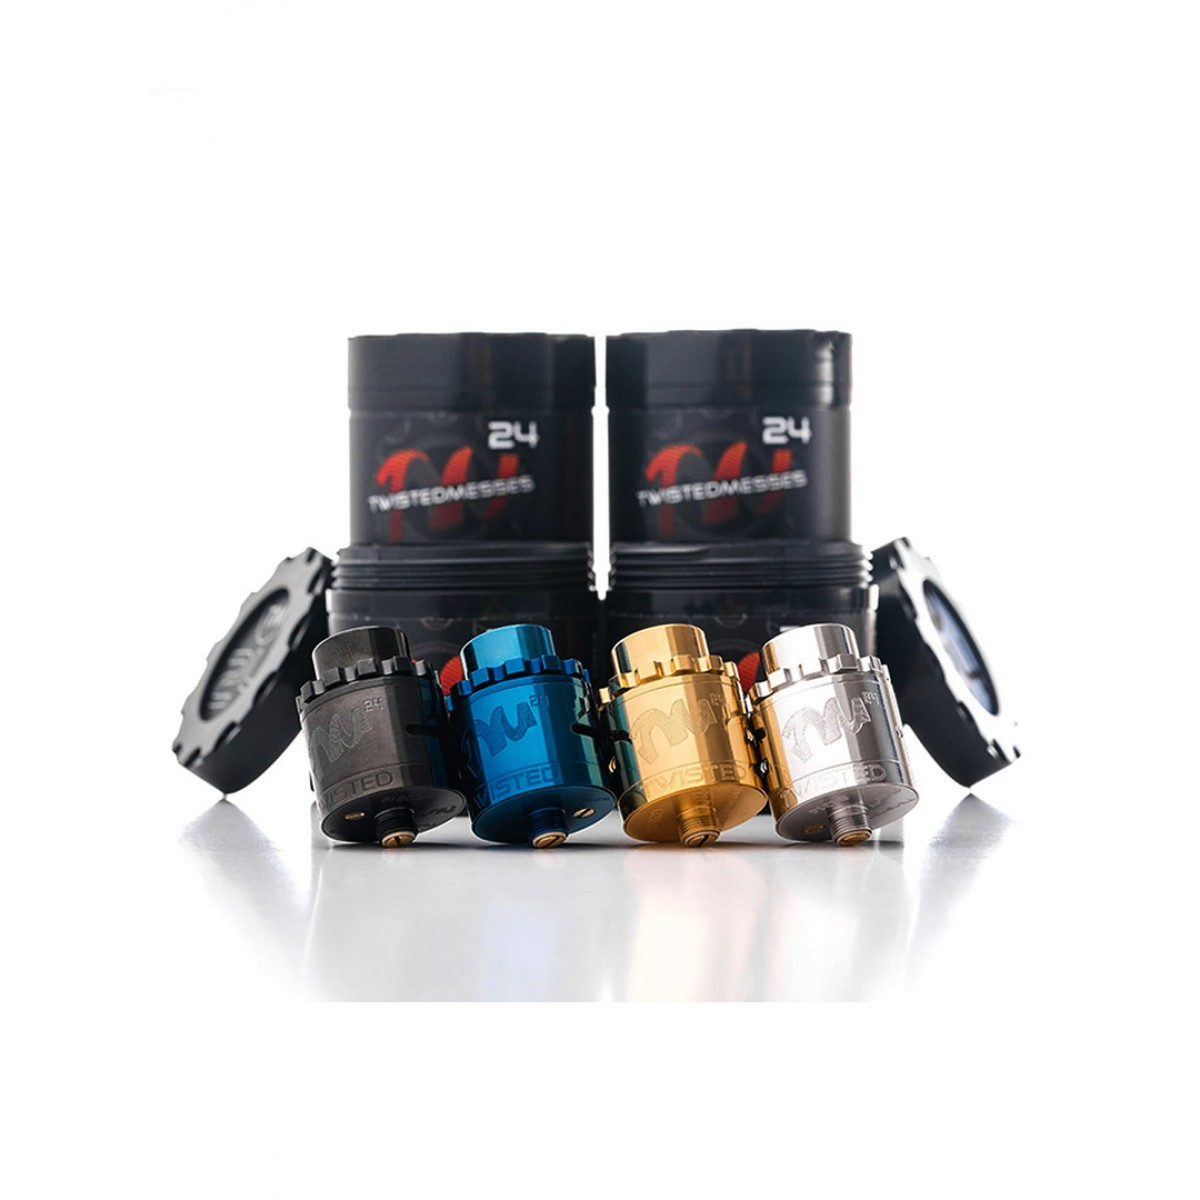 TM24 PRO-SERIES RDA BY TWISTED MESSES